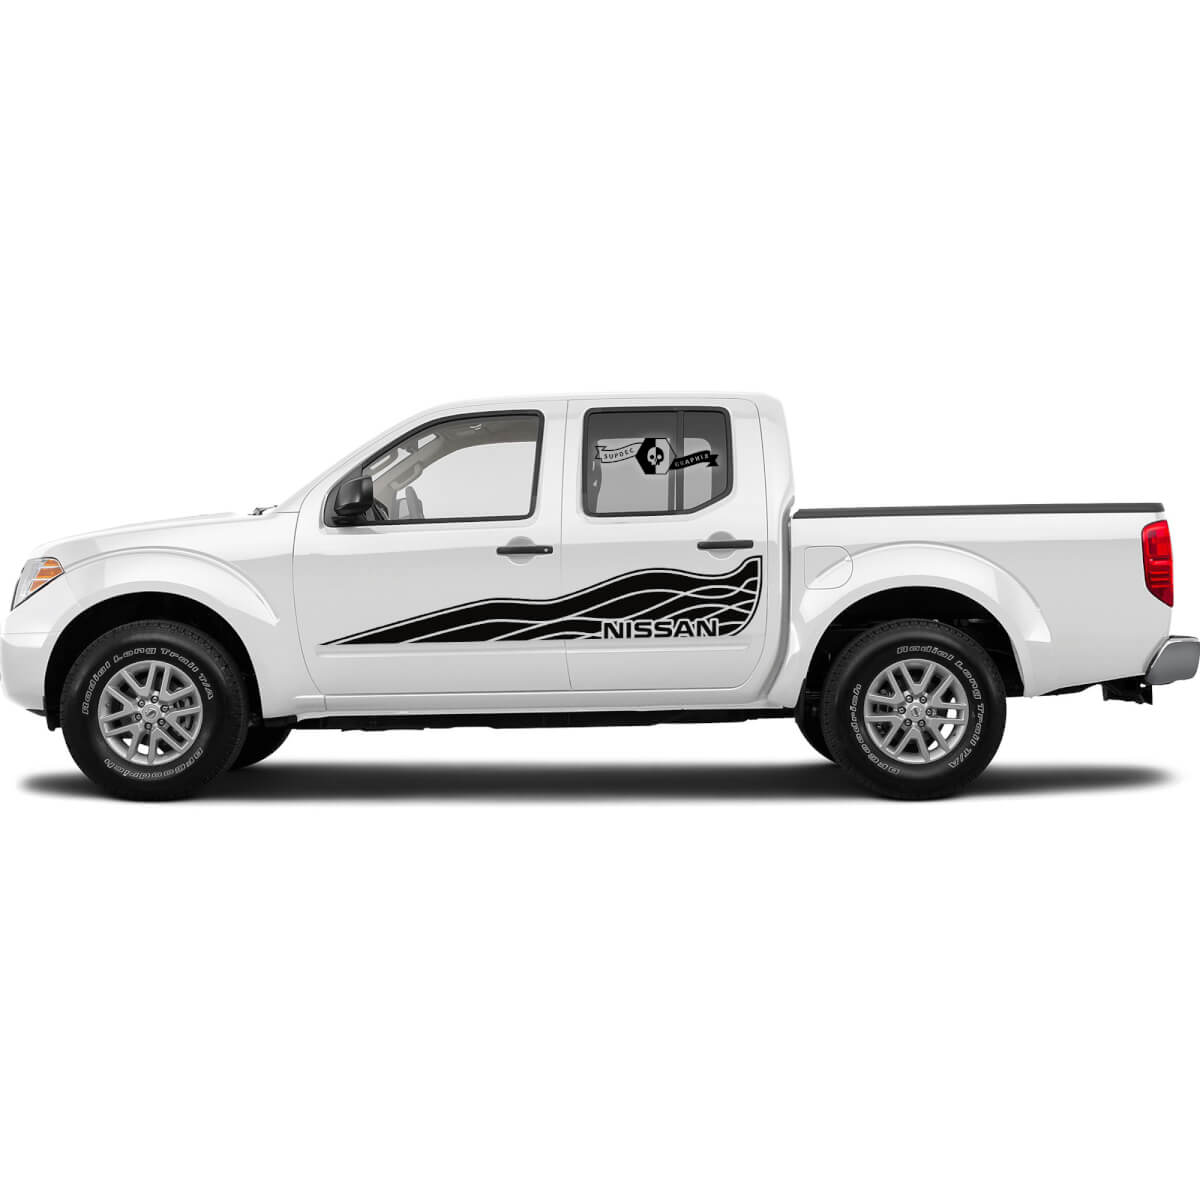 Pair of Wave Style Side Nissan Decals Stickers for Frontier